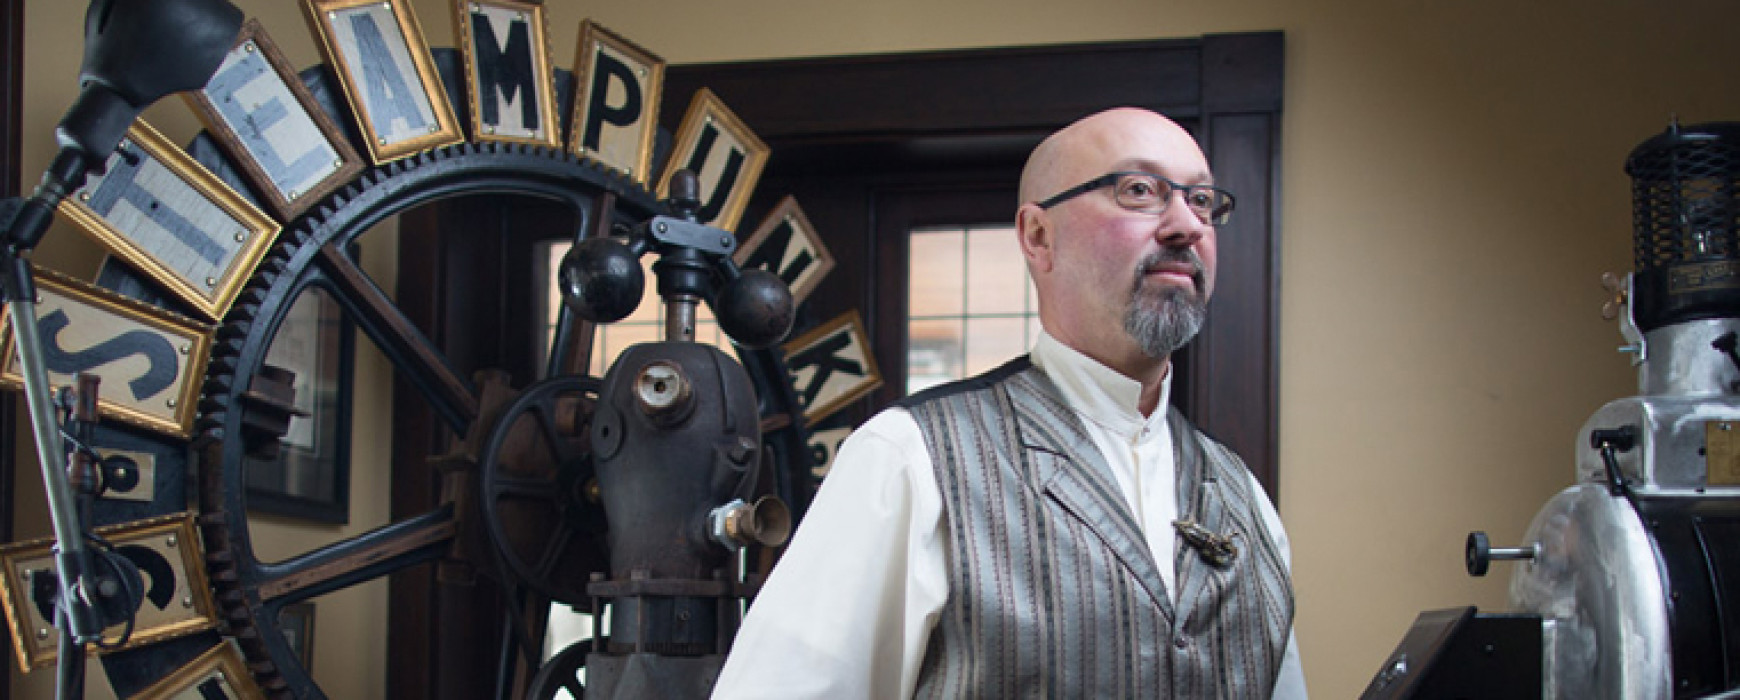 Wall Street Journal Newspaper Clip- Bruce Rosenbaum, the Steampunk Man